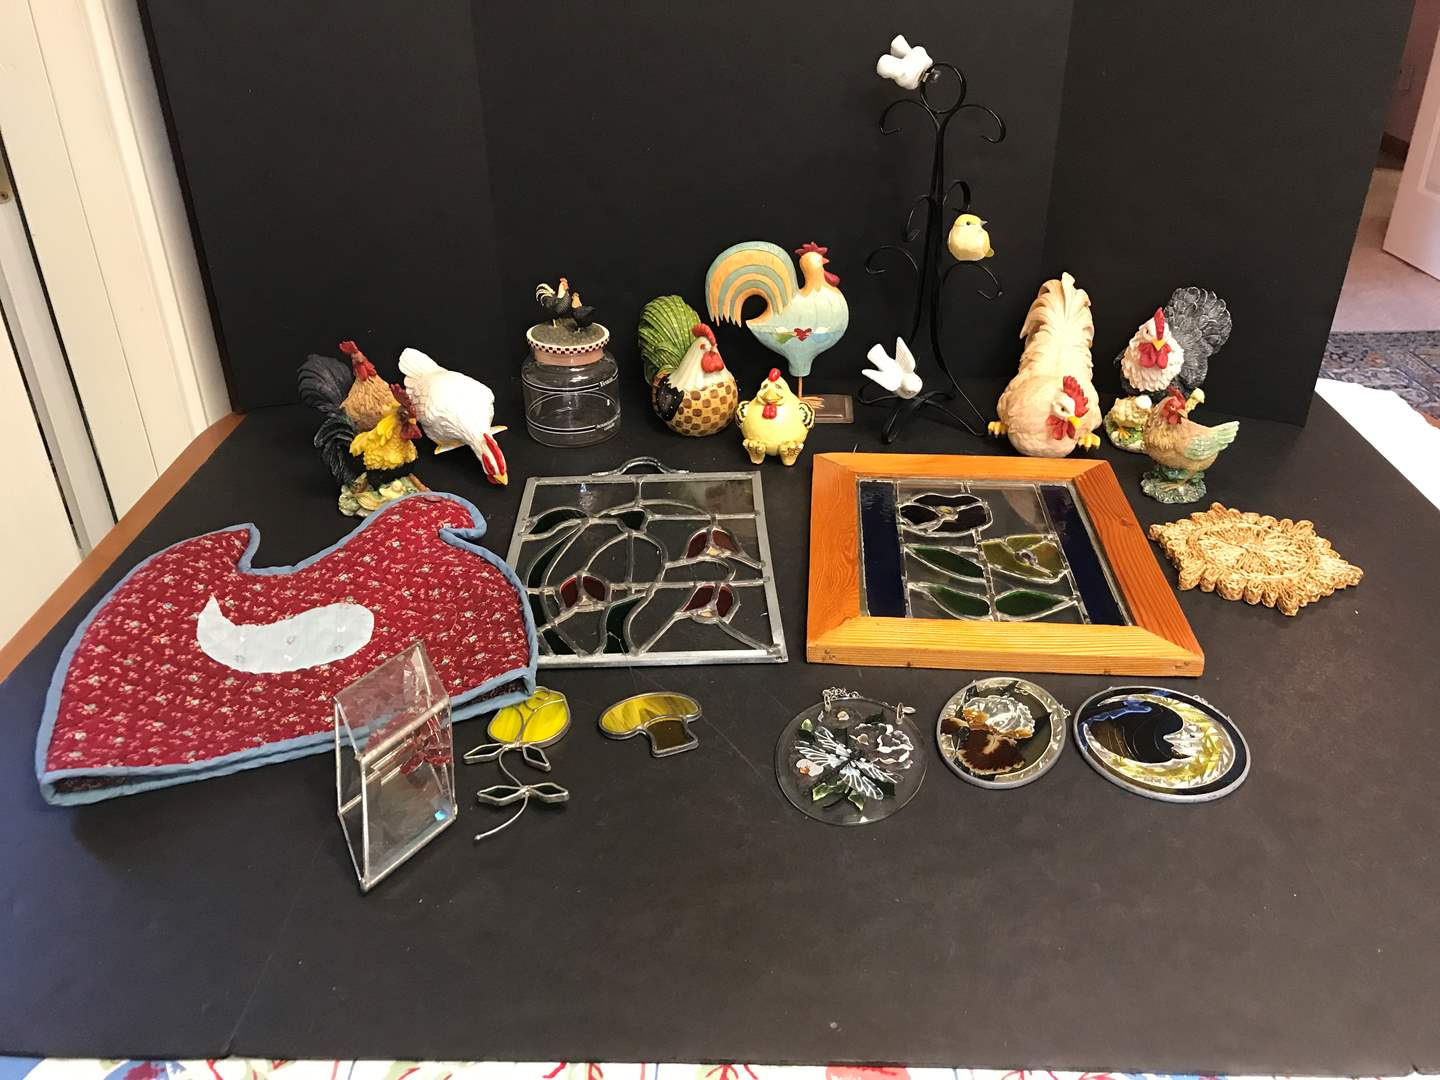 Lot # 79 - Lot of Rooster Decor & Some Stained Glass Items (main image)